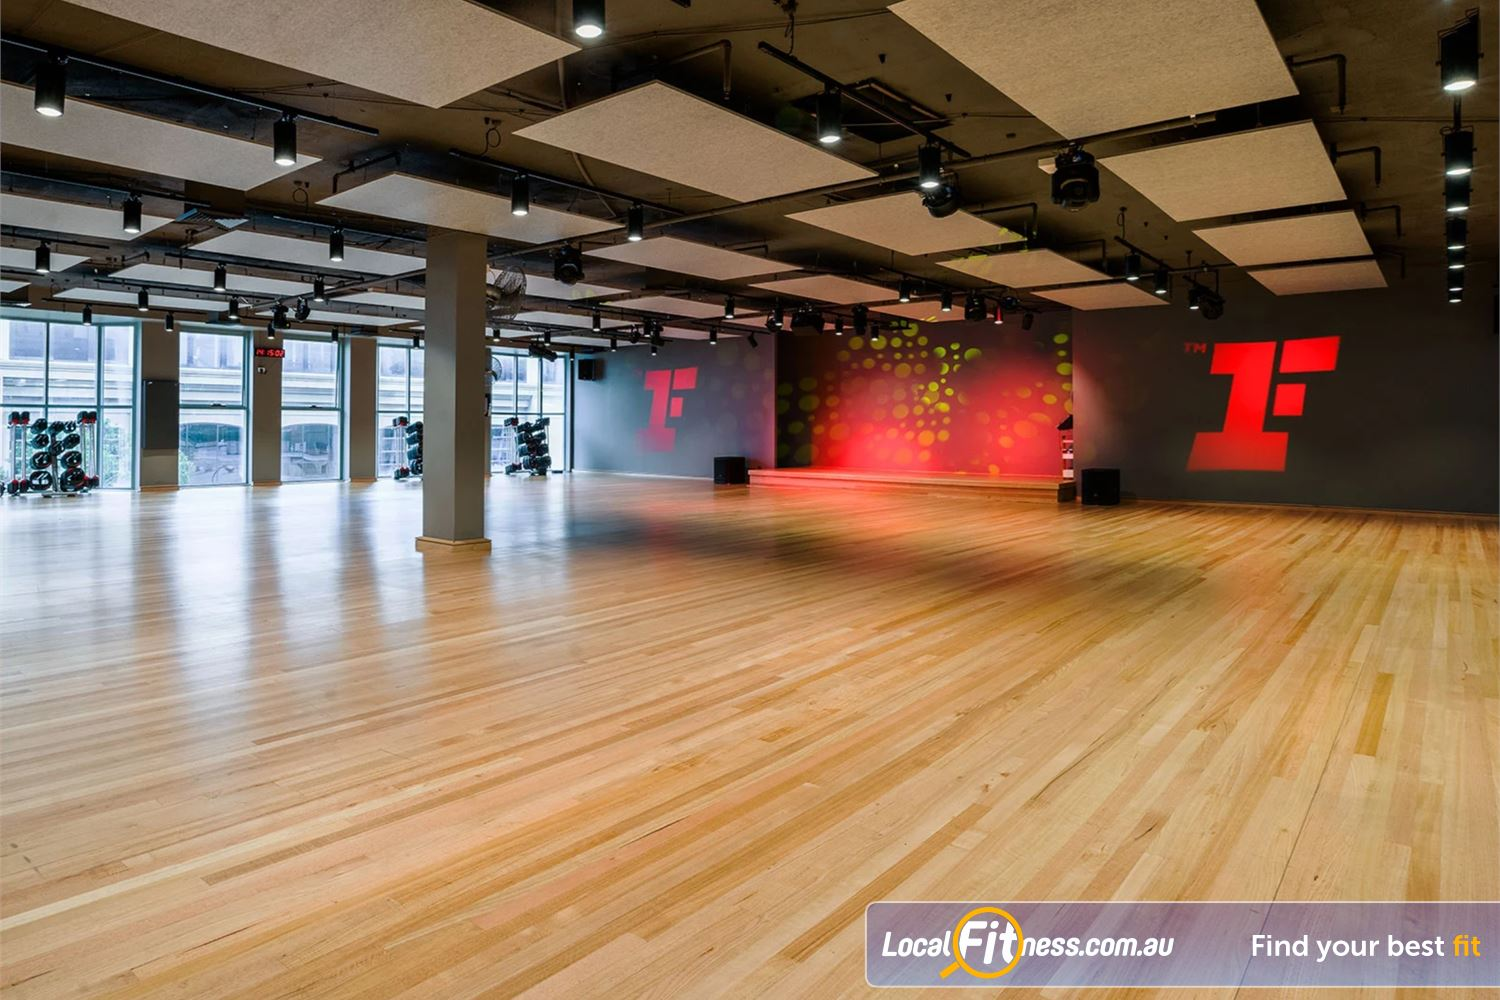 Fitness First Platinum Spring St Near Queens Park Over 80 classes per week including Bondi Yoga, Pilates, Barre, Les Mills and more.